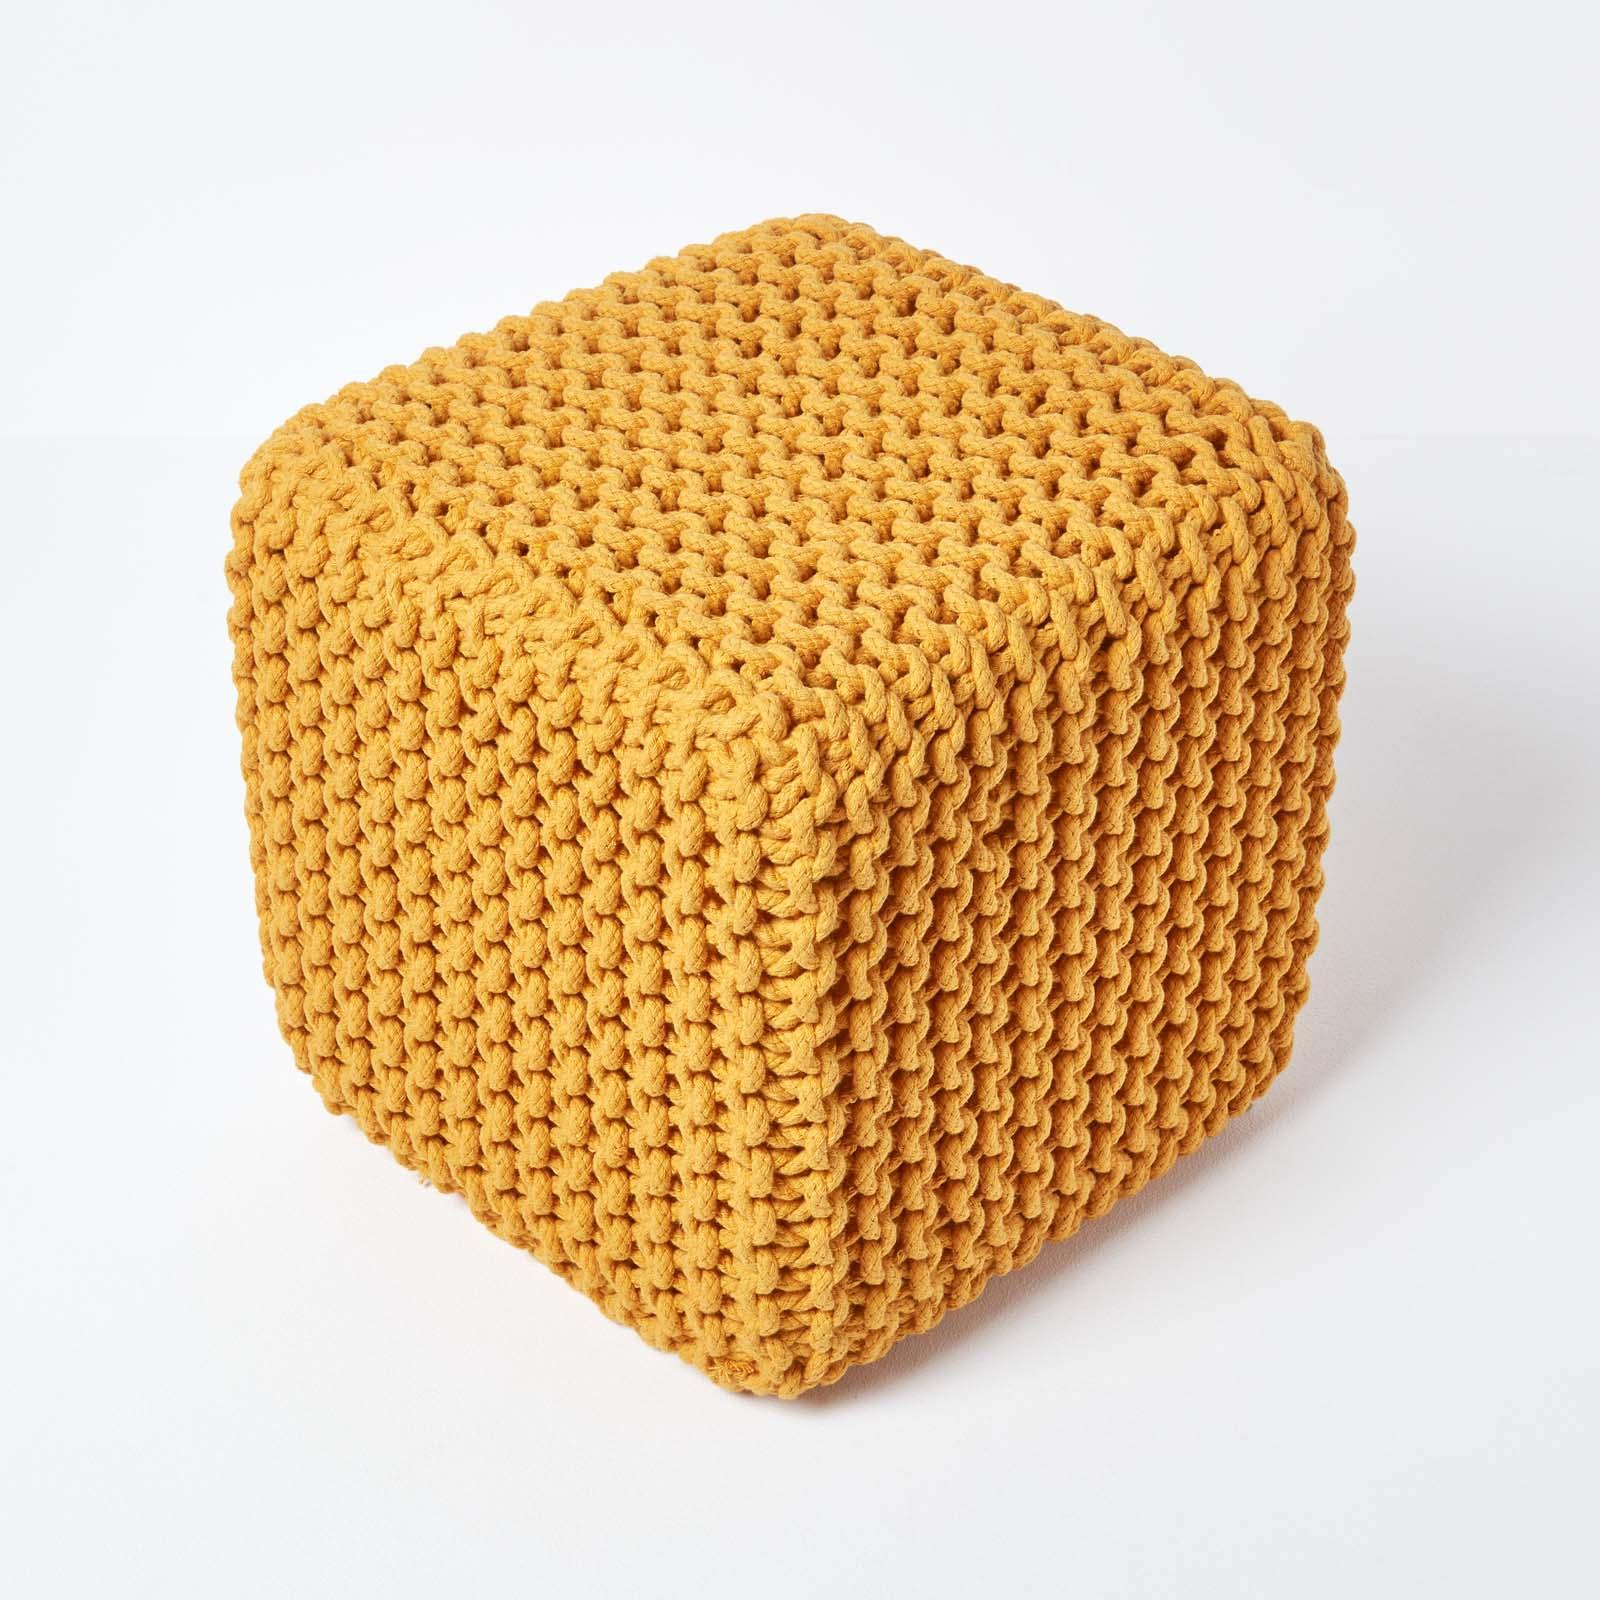 Hand-Knitted-100-Cotton-Pouffes-Round-Sphere-Or-Cube-Square-Chunky-Footstools thumbnail 88